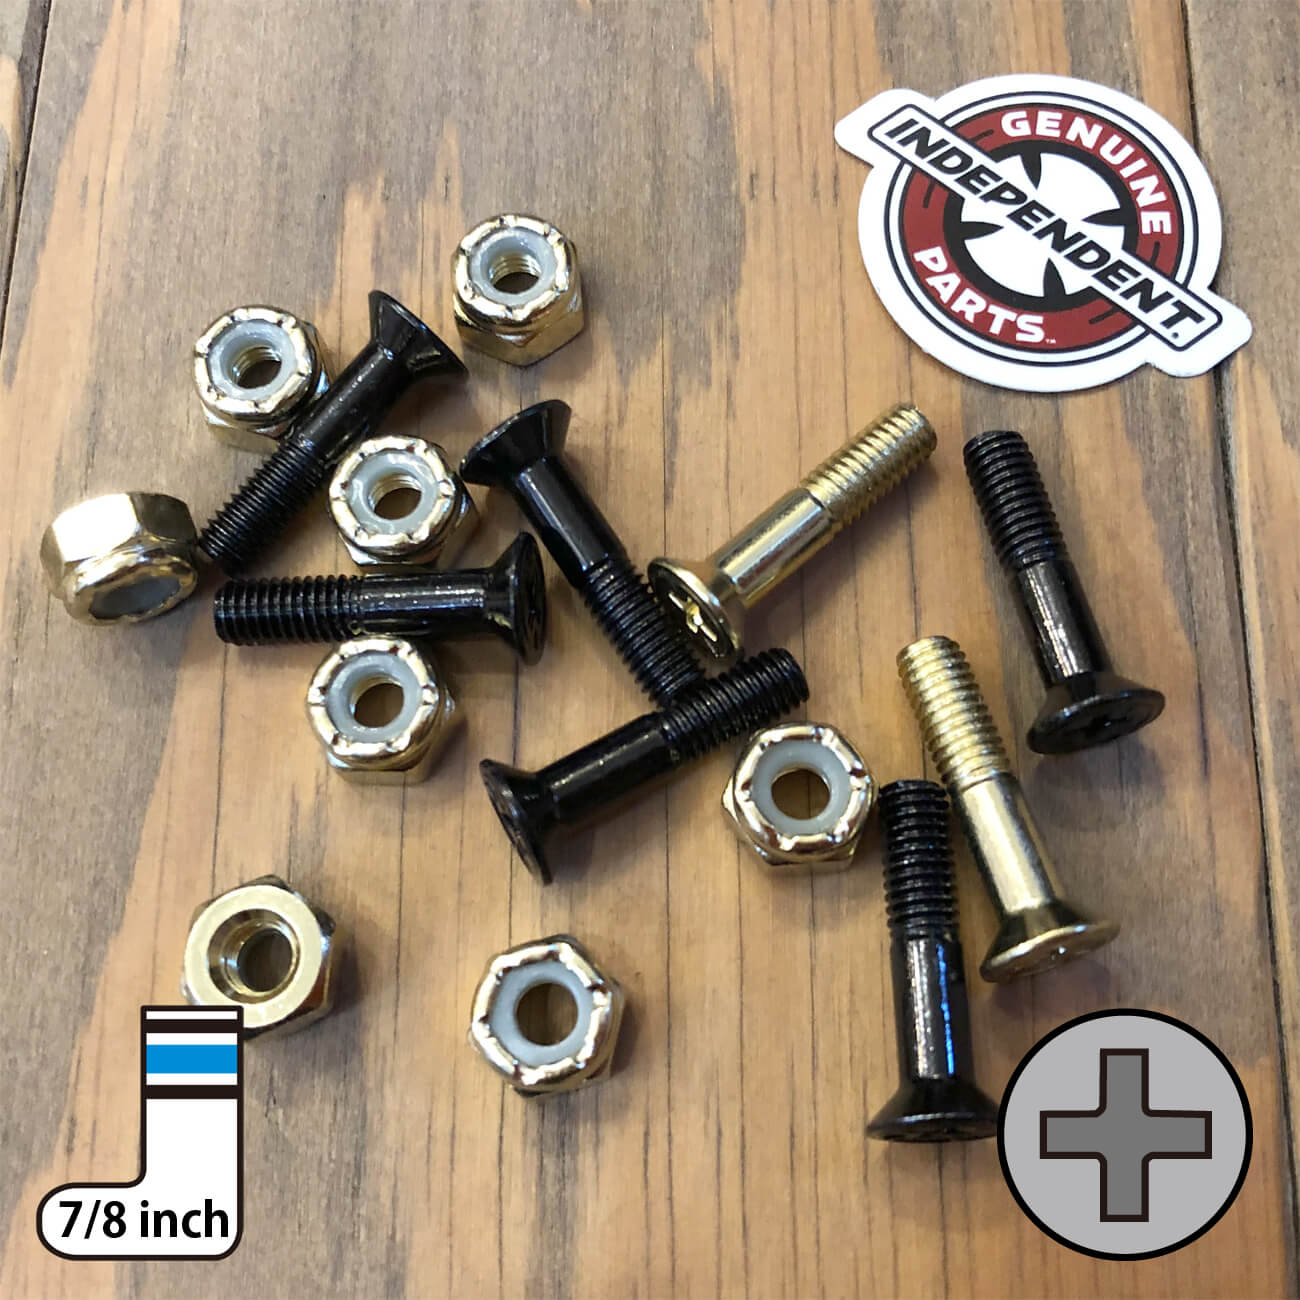 INDEPENDENT CROSS BOLTS 7/8inch GOLD PHILLIPS(プラス)